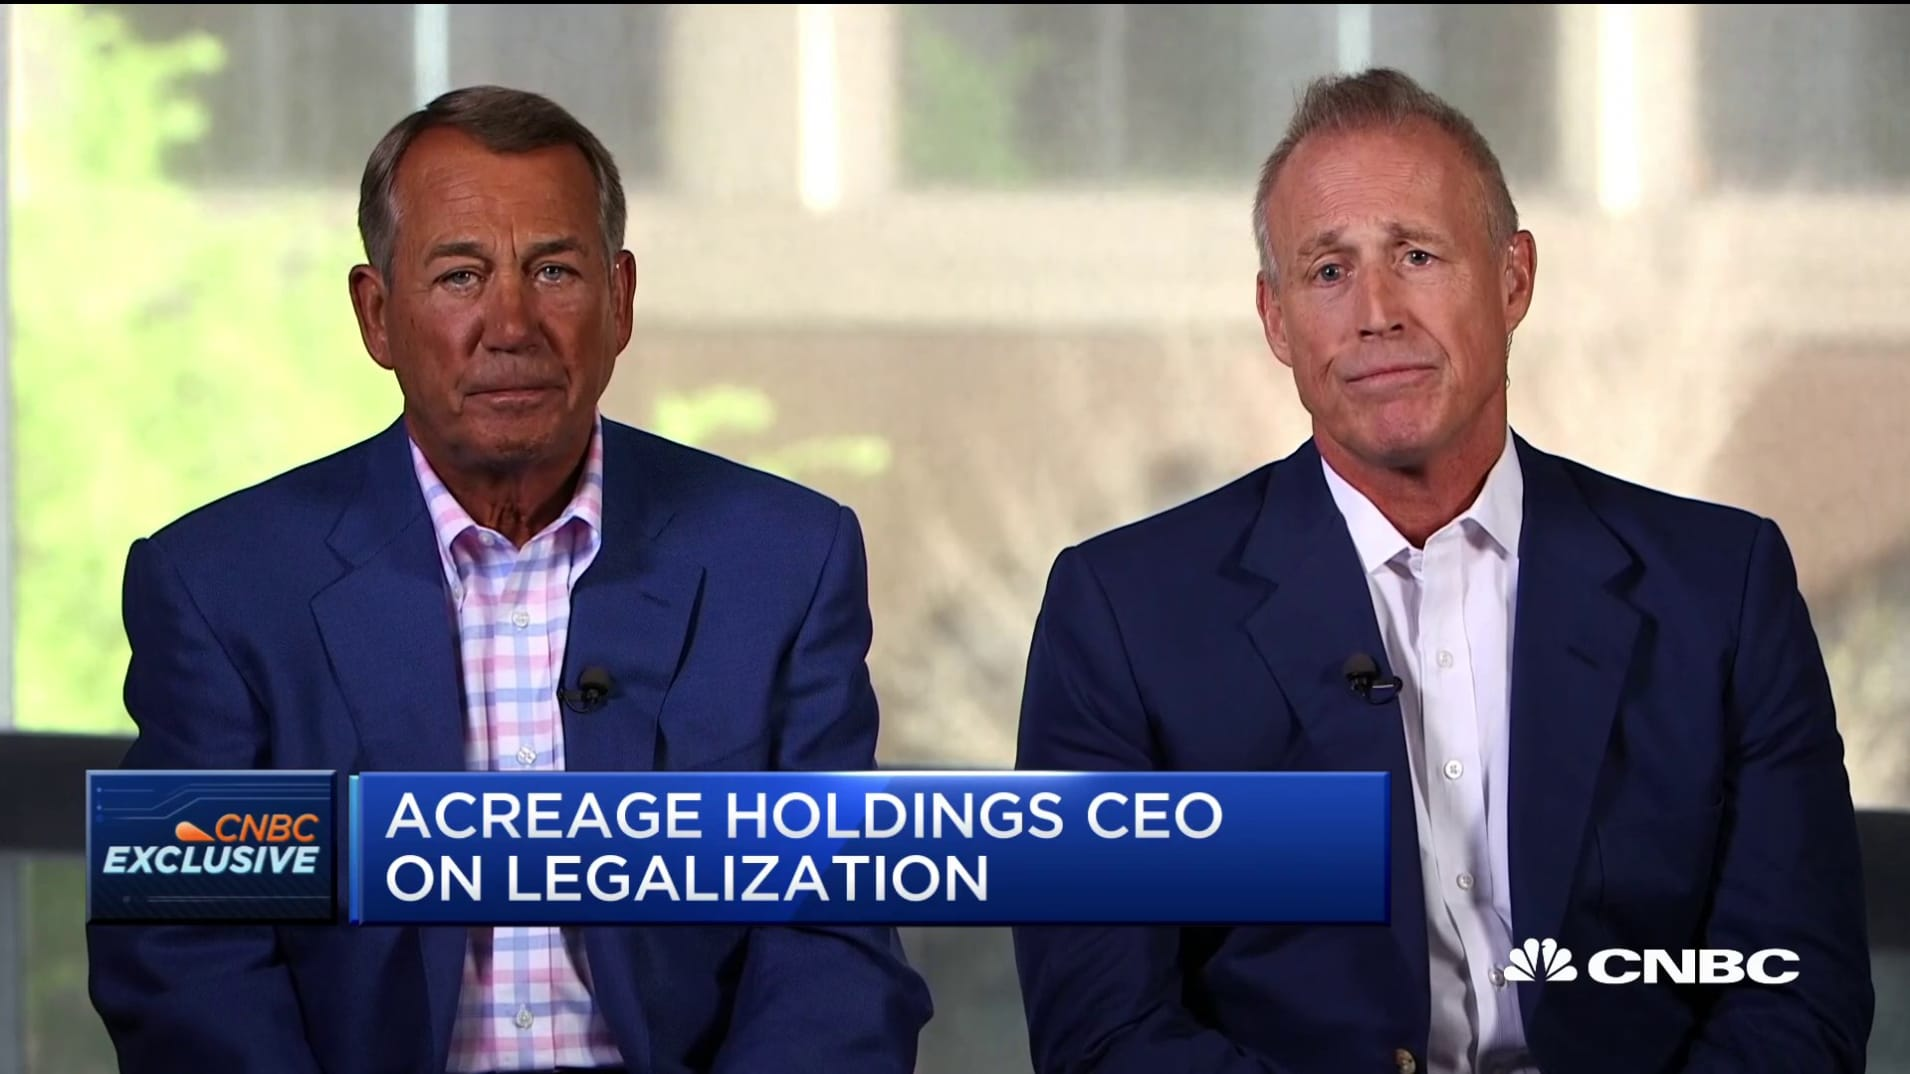 Watch CNBC's full interview with former House Speaker John Boehner and Acreage CEO Kevin Murphy